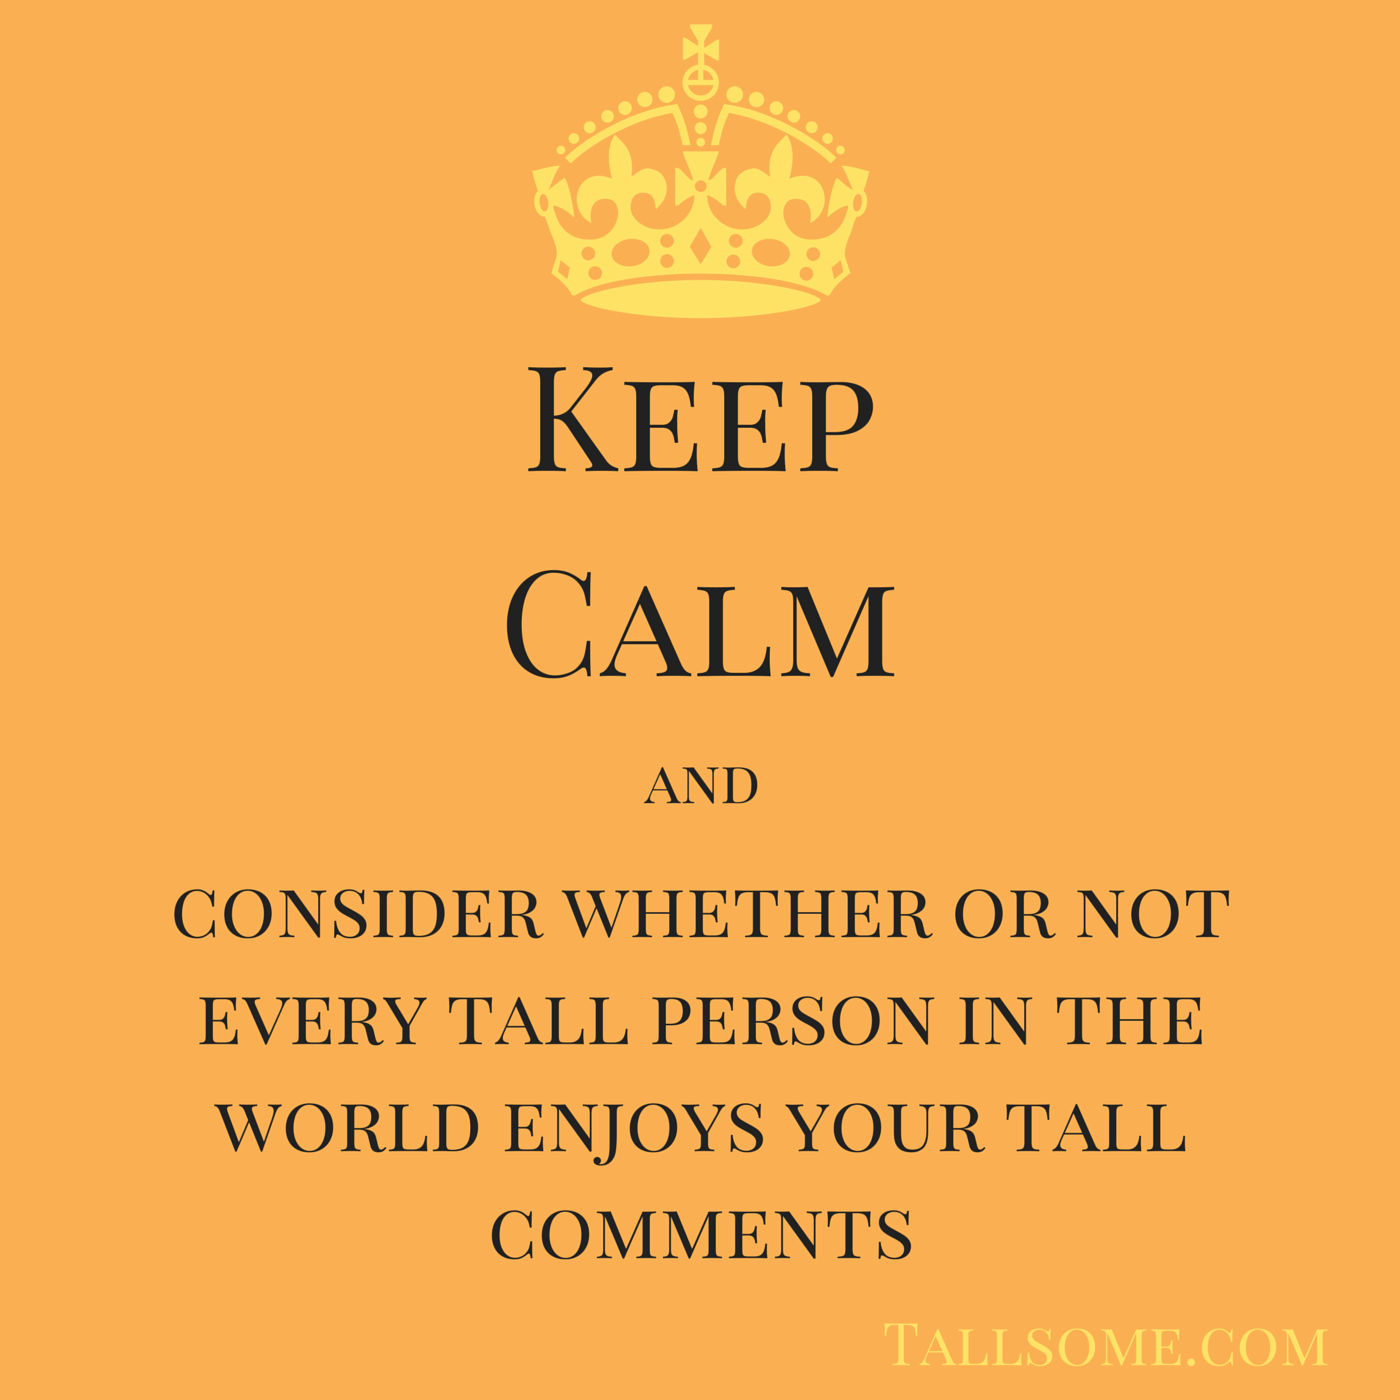 Keep Calm Tall Comments